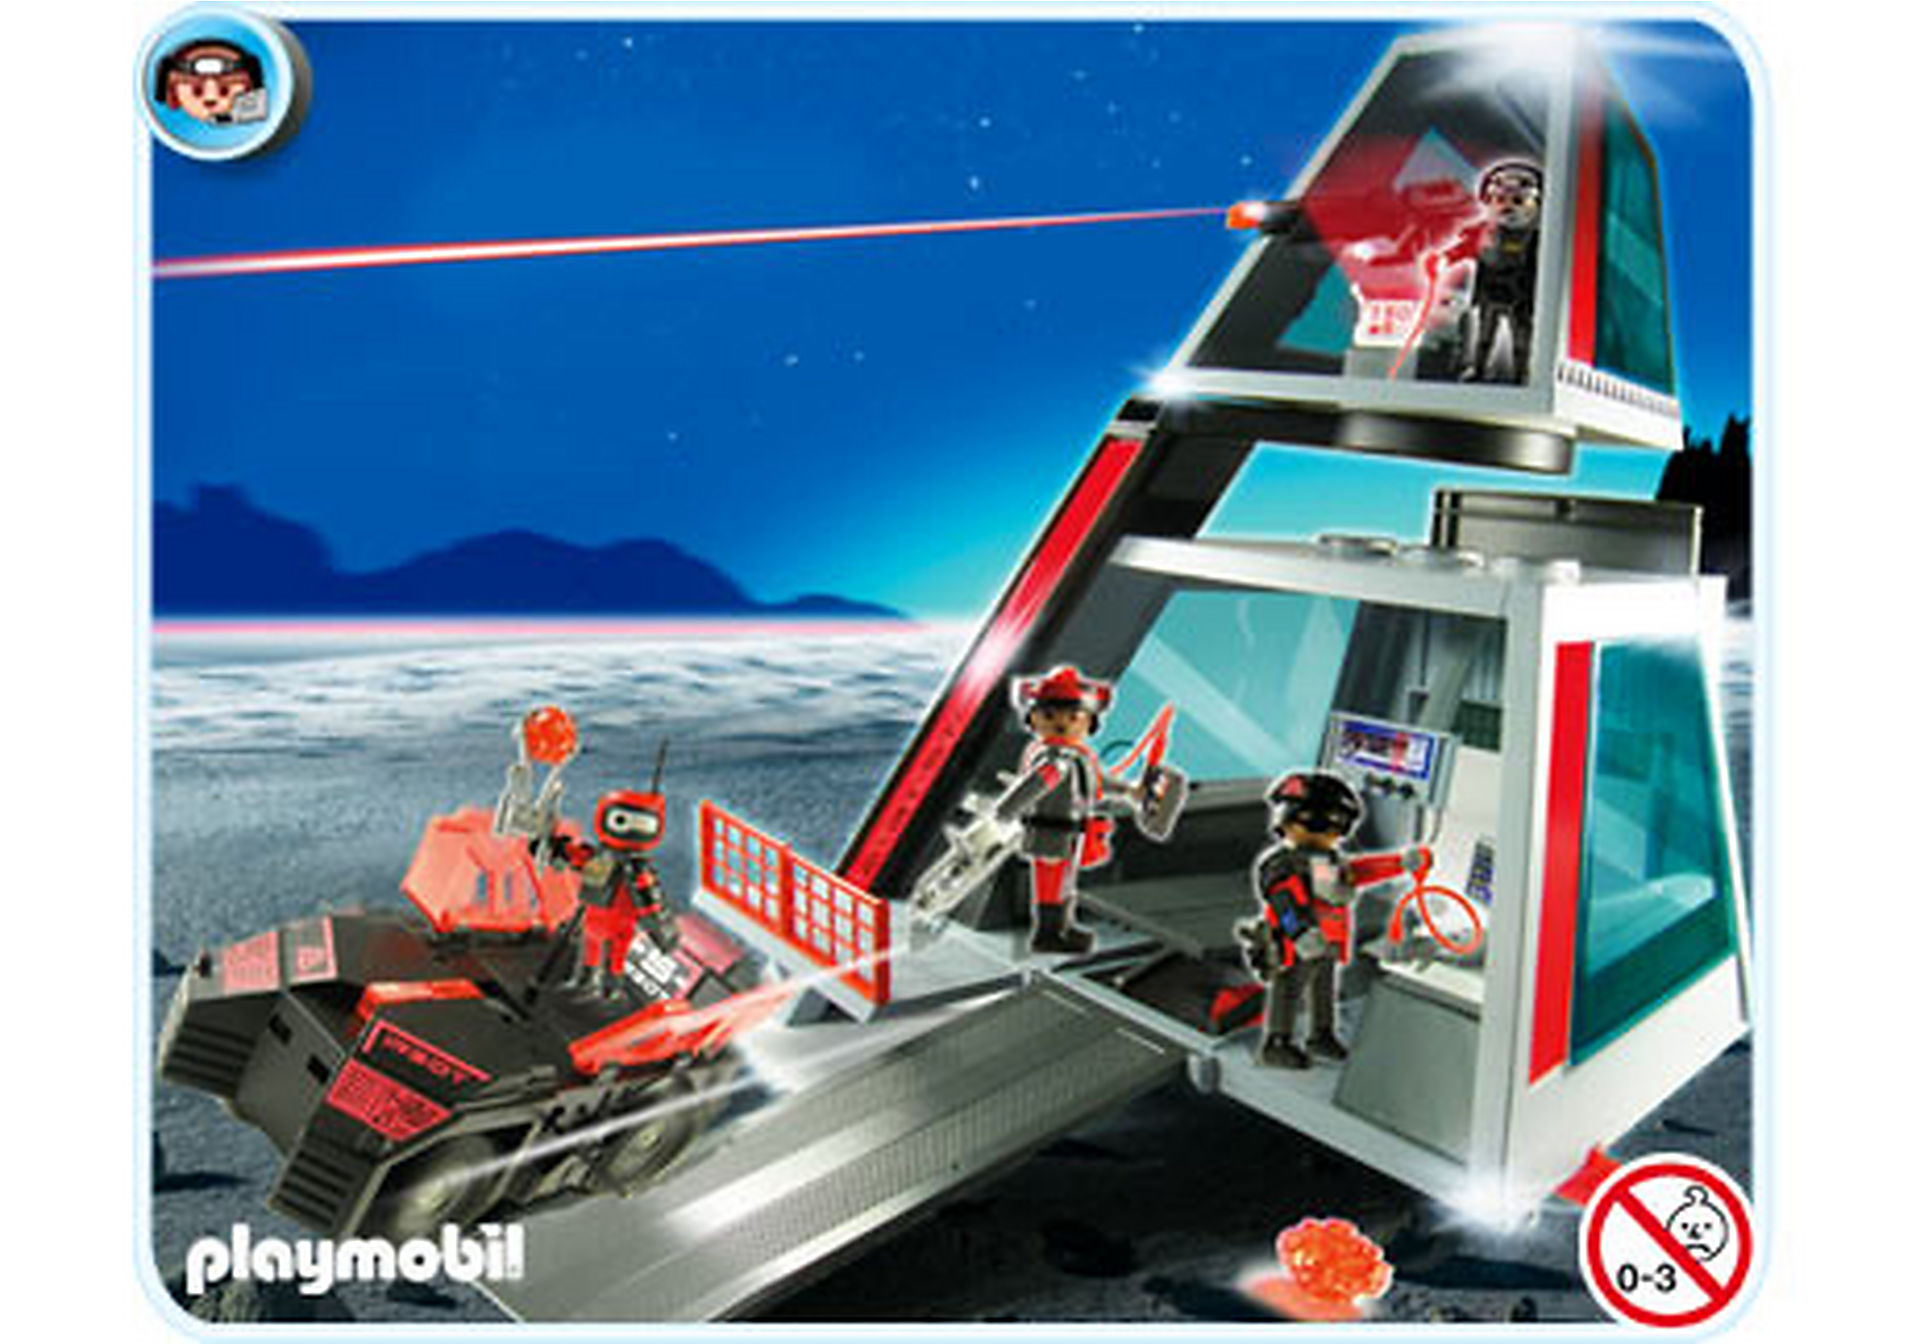 http://media.playmobil.com/i/playmobil/5153-A_product_detail/Darksters Tower Station